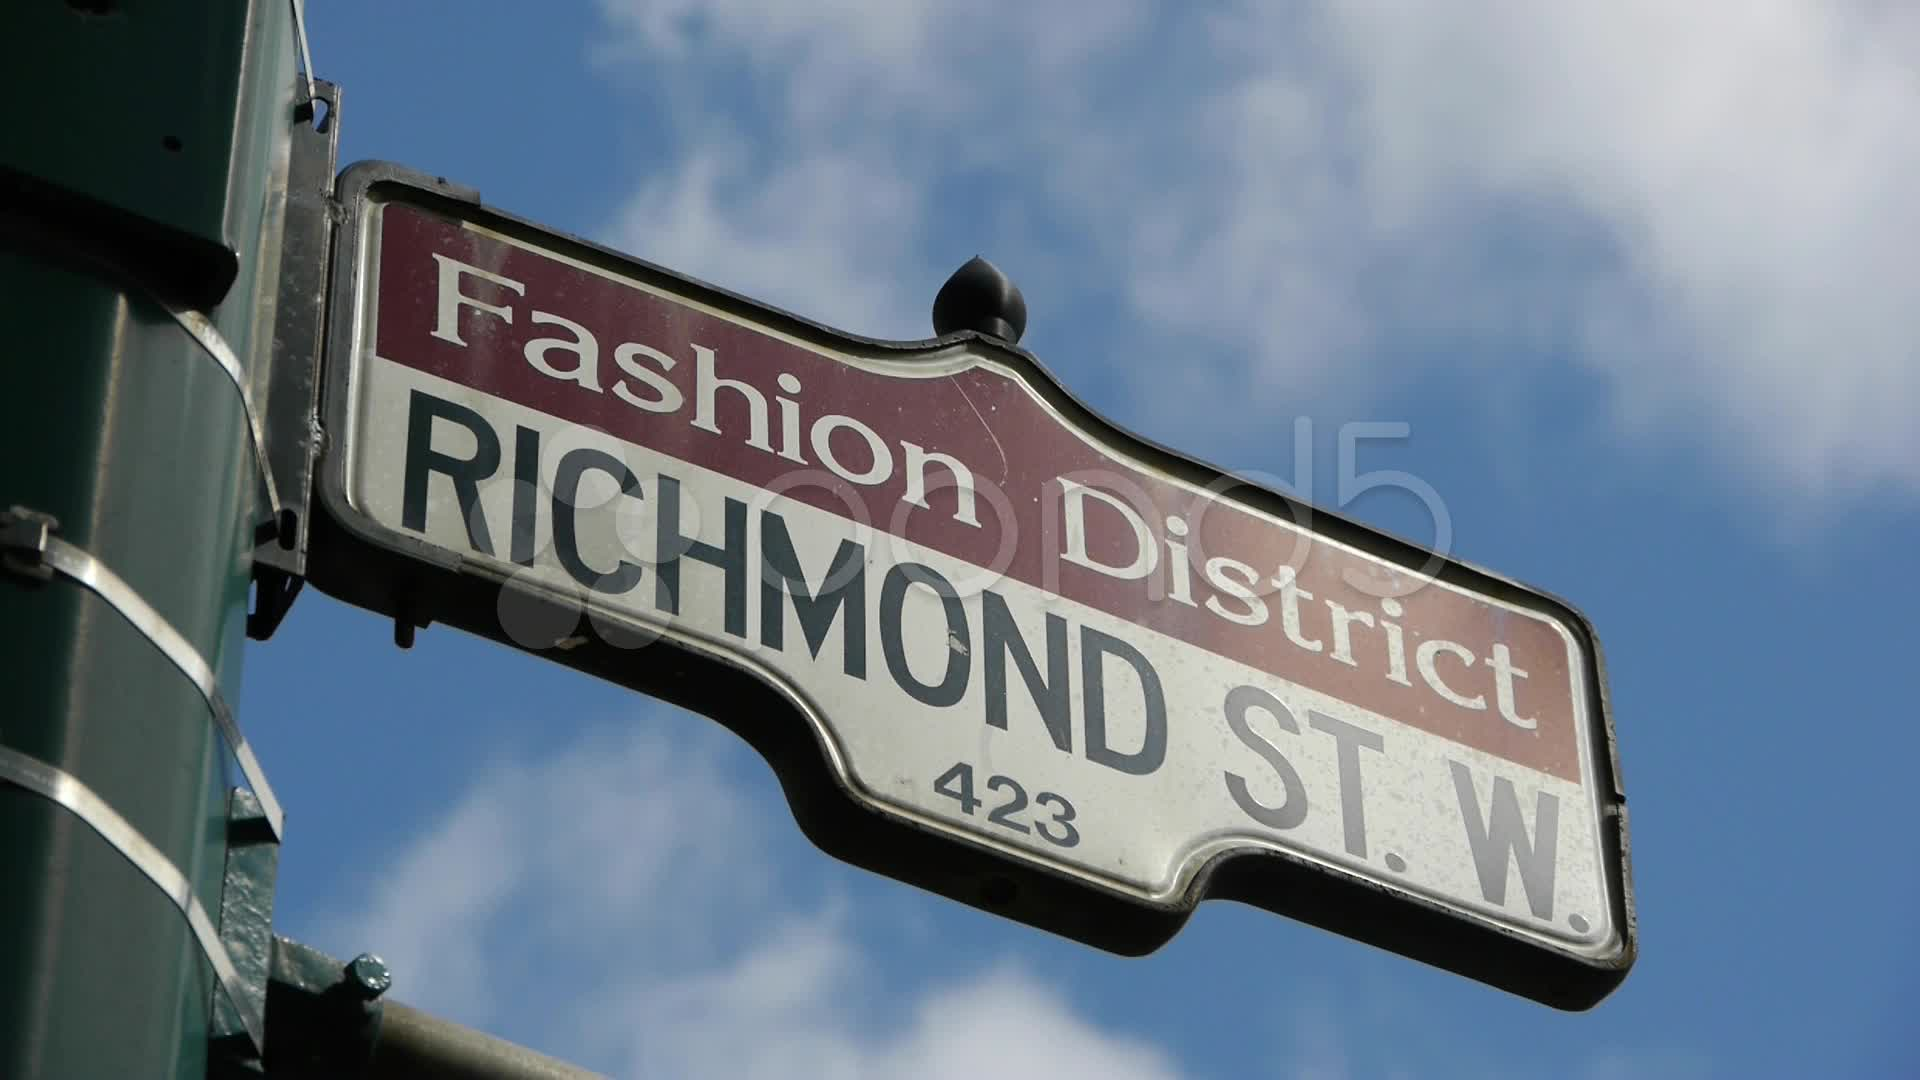 011014075-fashion-district-street-sign-c